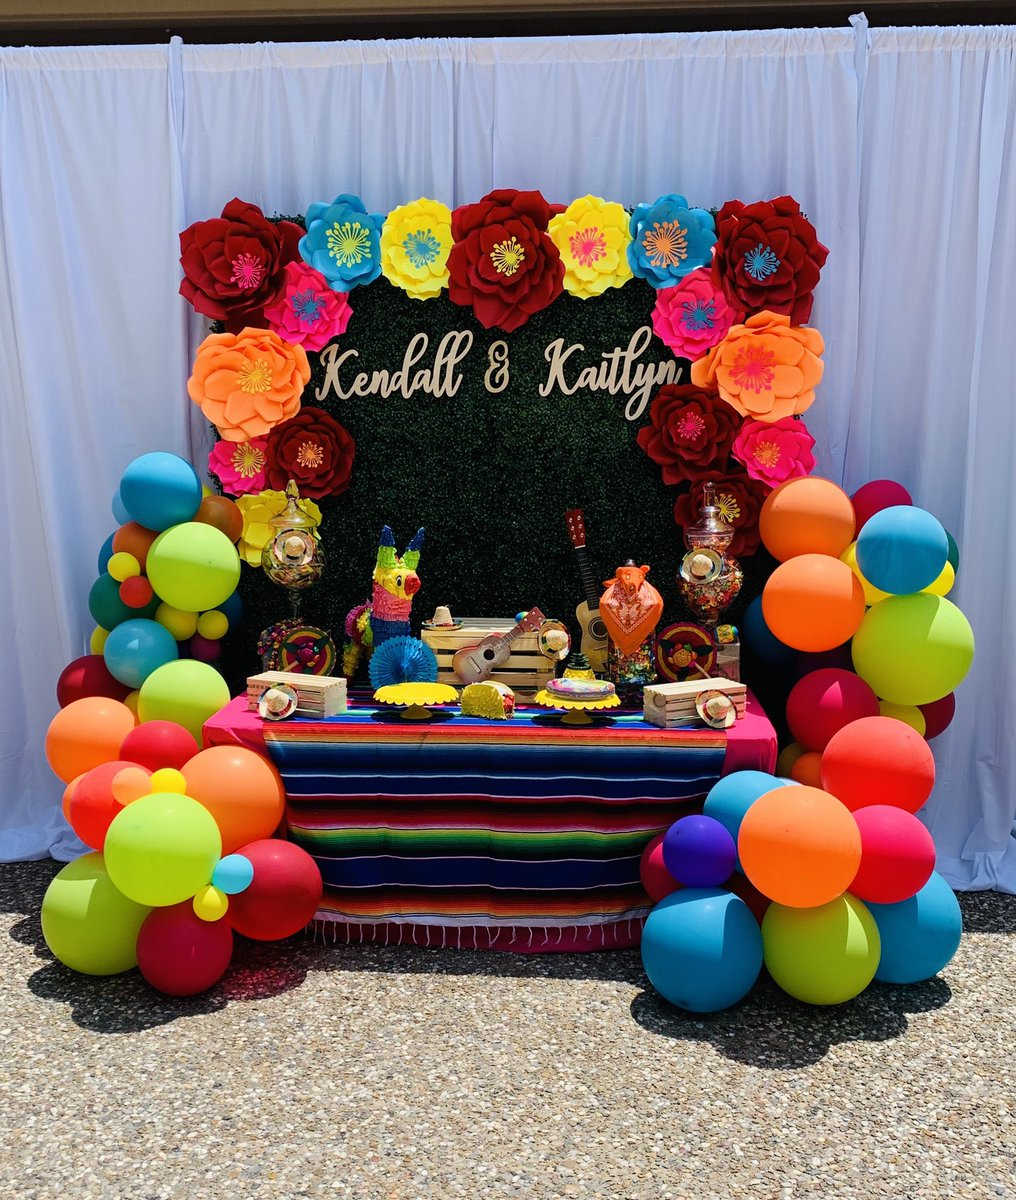 L Riliece Events On Twitter Fiesta Fiesta It S A Fiesta Graduation Pool Party For Twins Kendall And Kaitlyn Contact Us Today About Your Upcoming Event Eventstylist Balloongarland Balloondecor Fiesta Fiestatreattable Fiestatheme